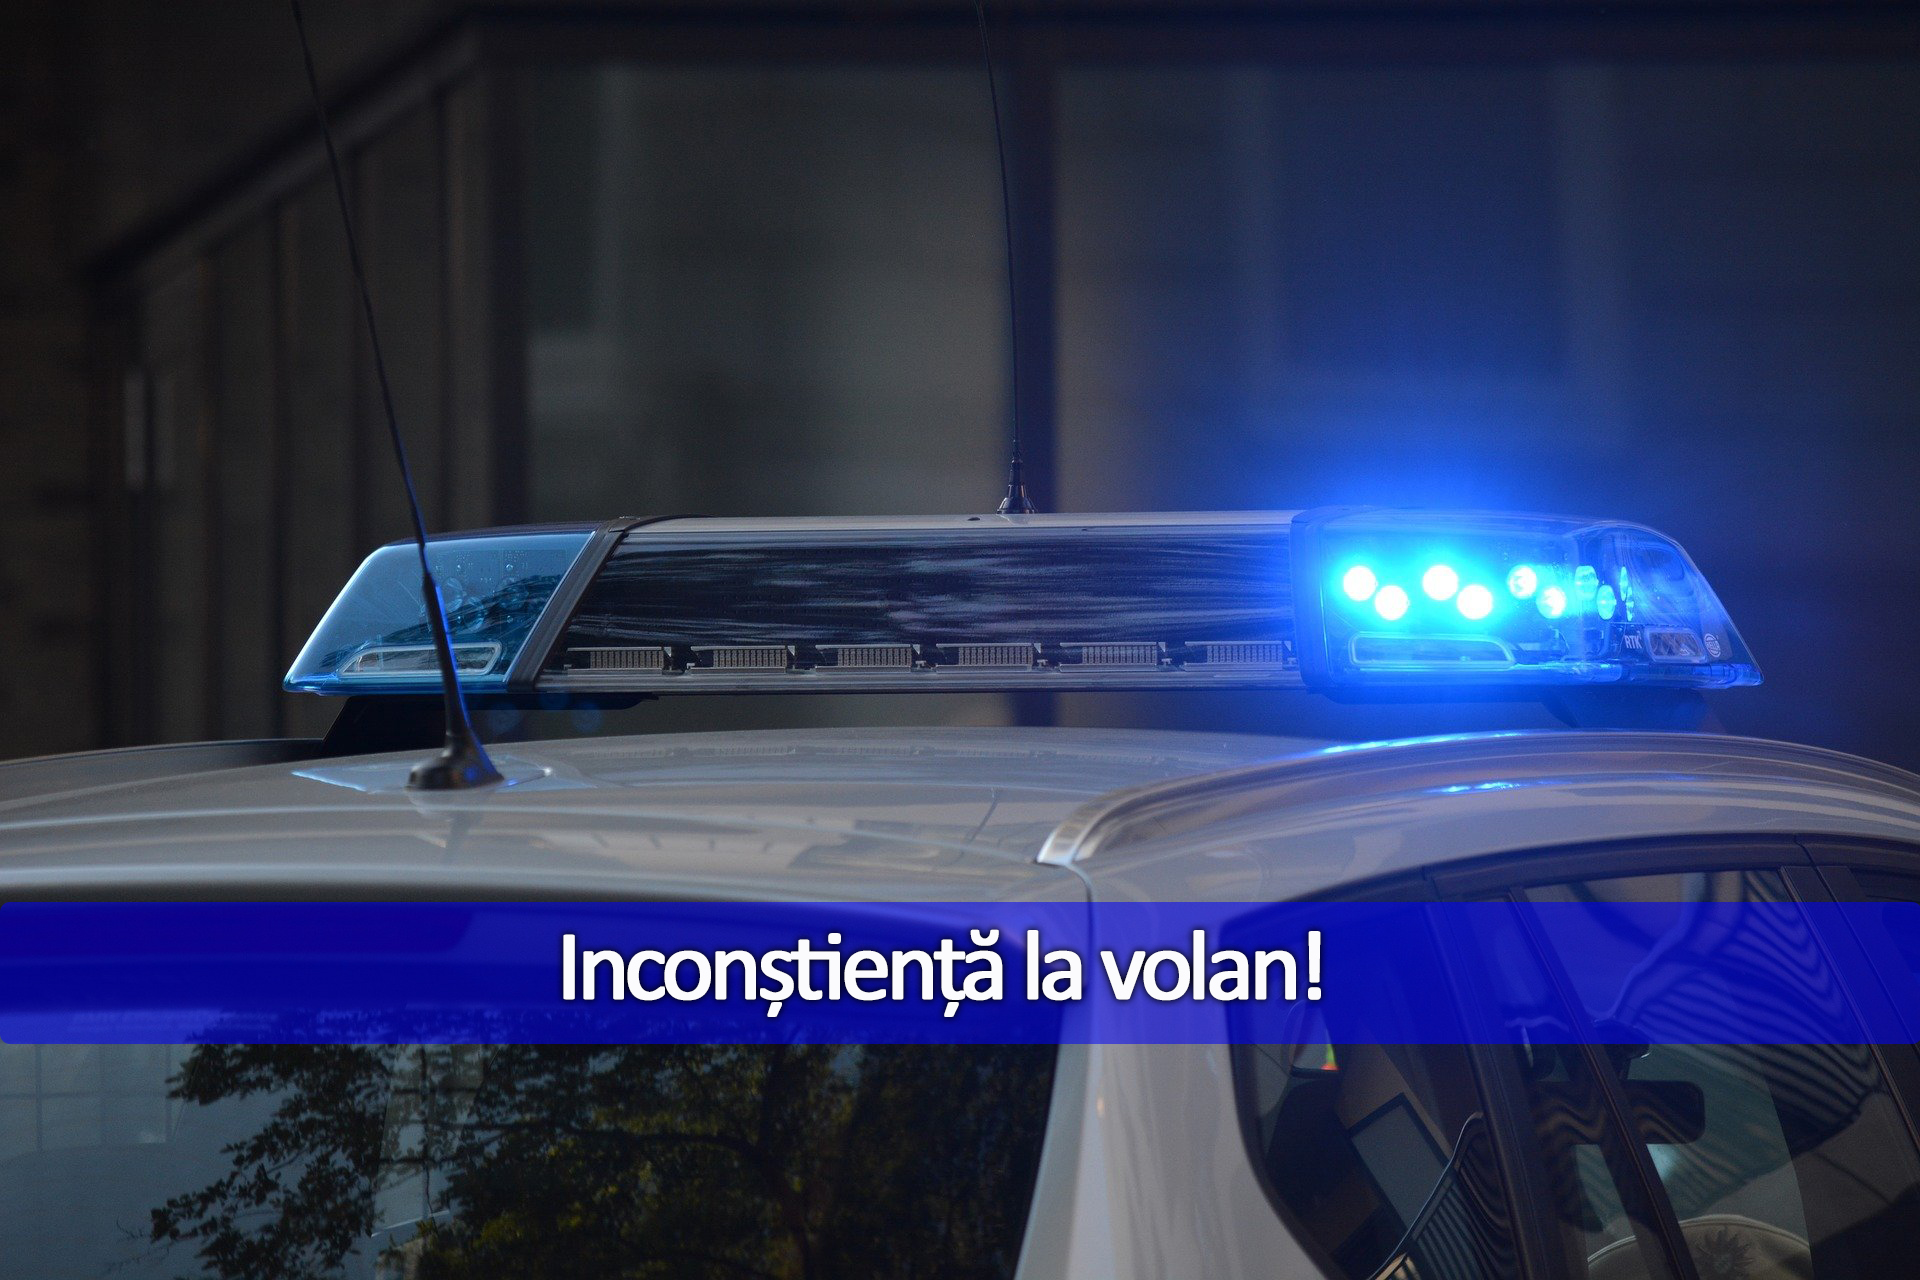 volan accident